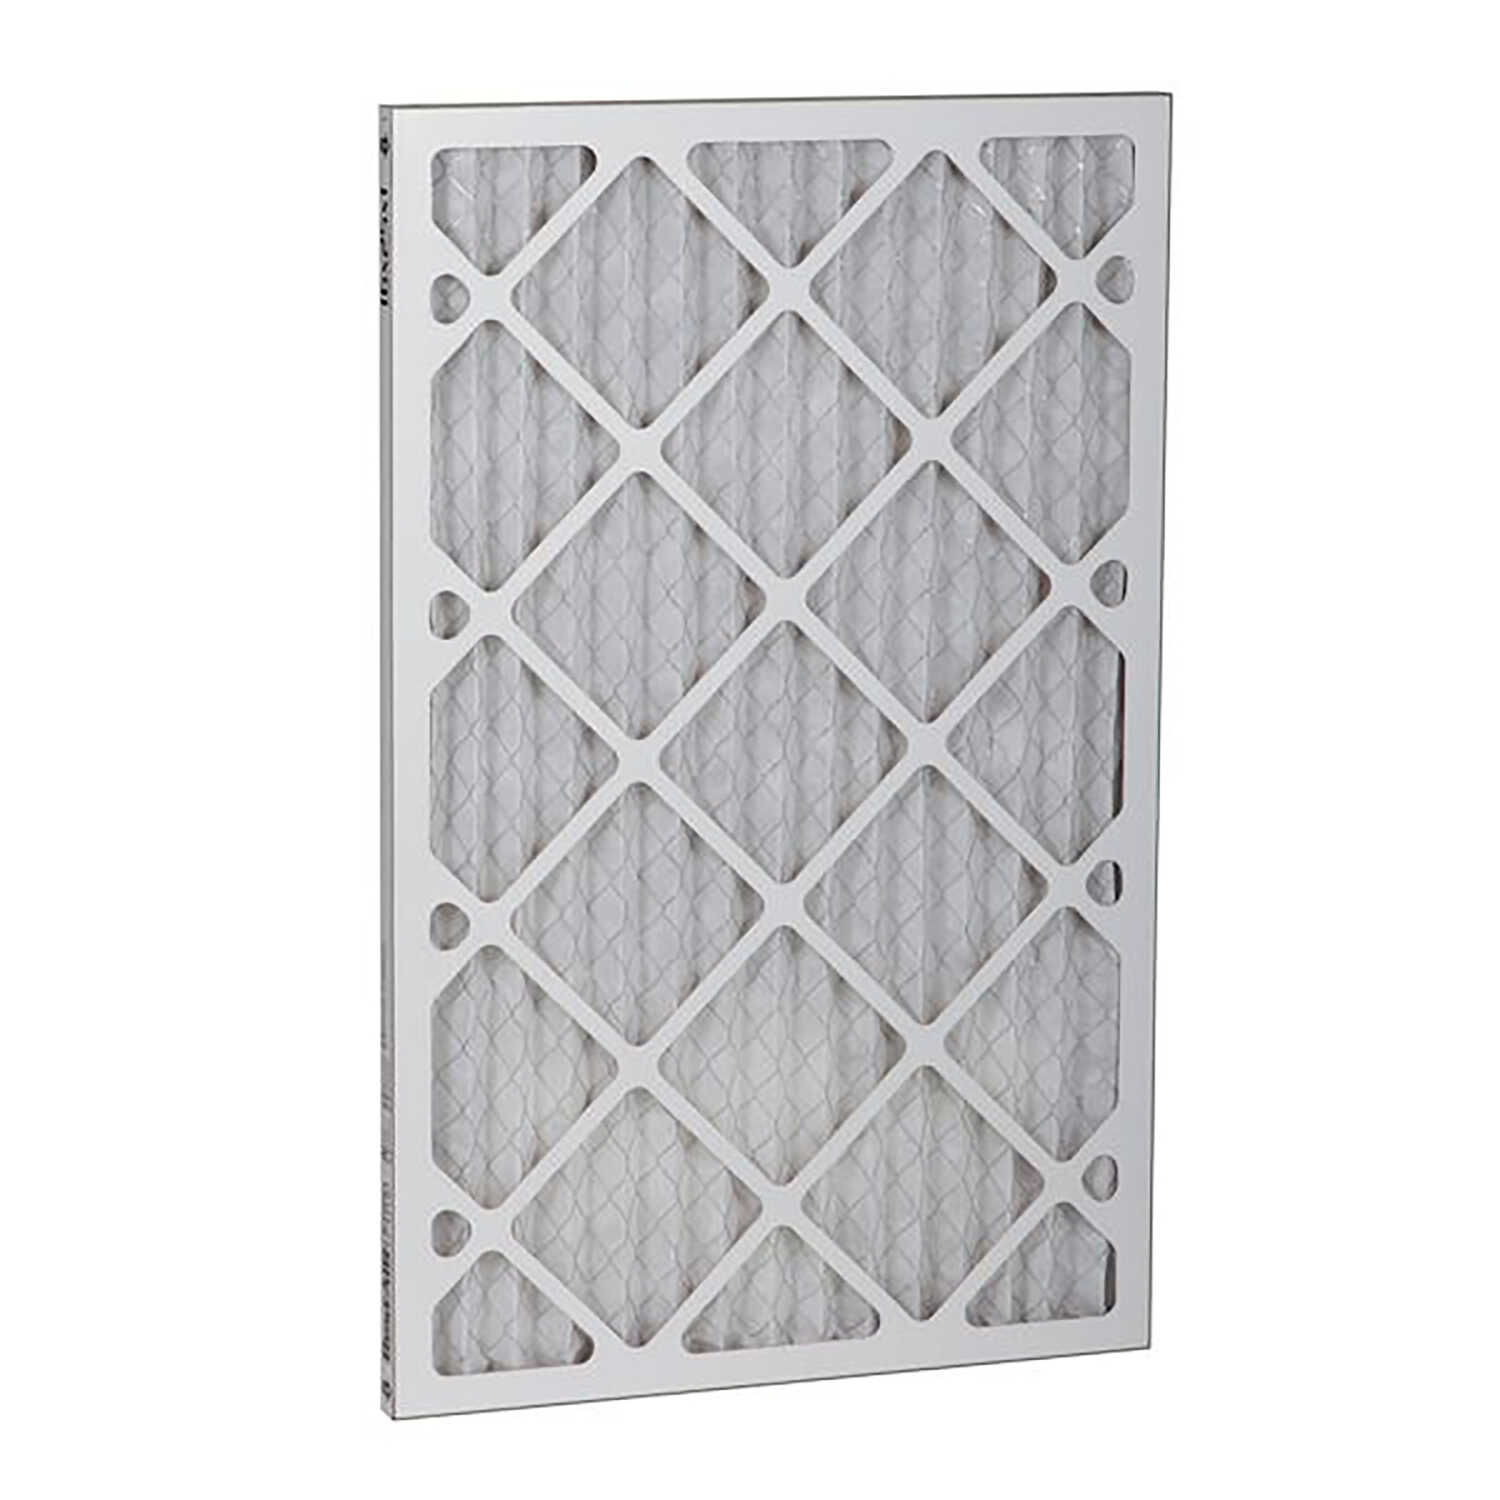 BestAir  20 in. H x 24 in. W x 1 in. D 8 MERV Air Filter